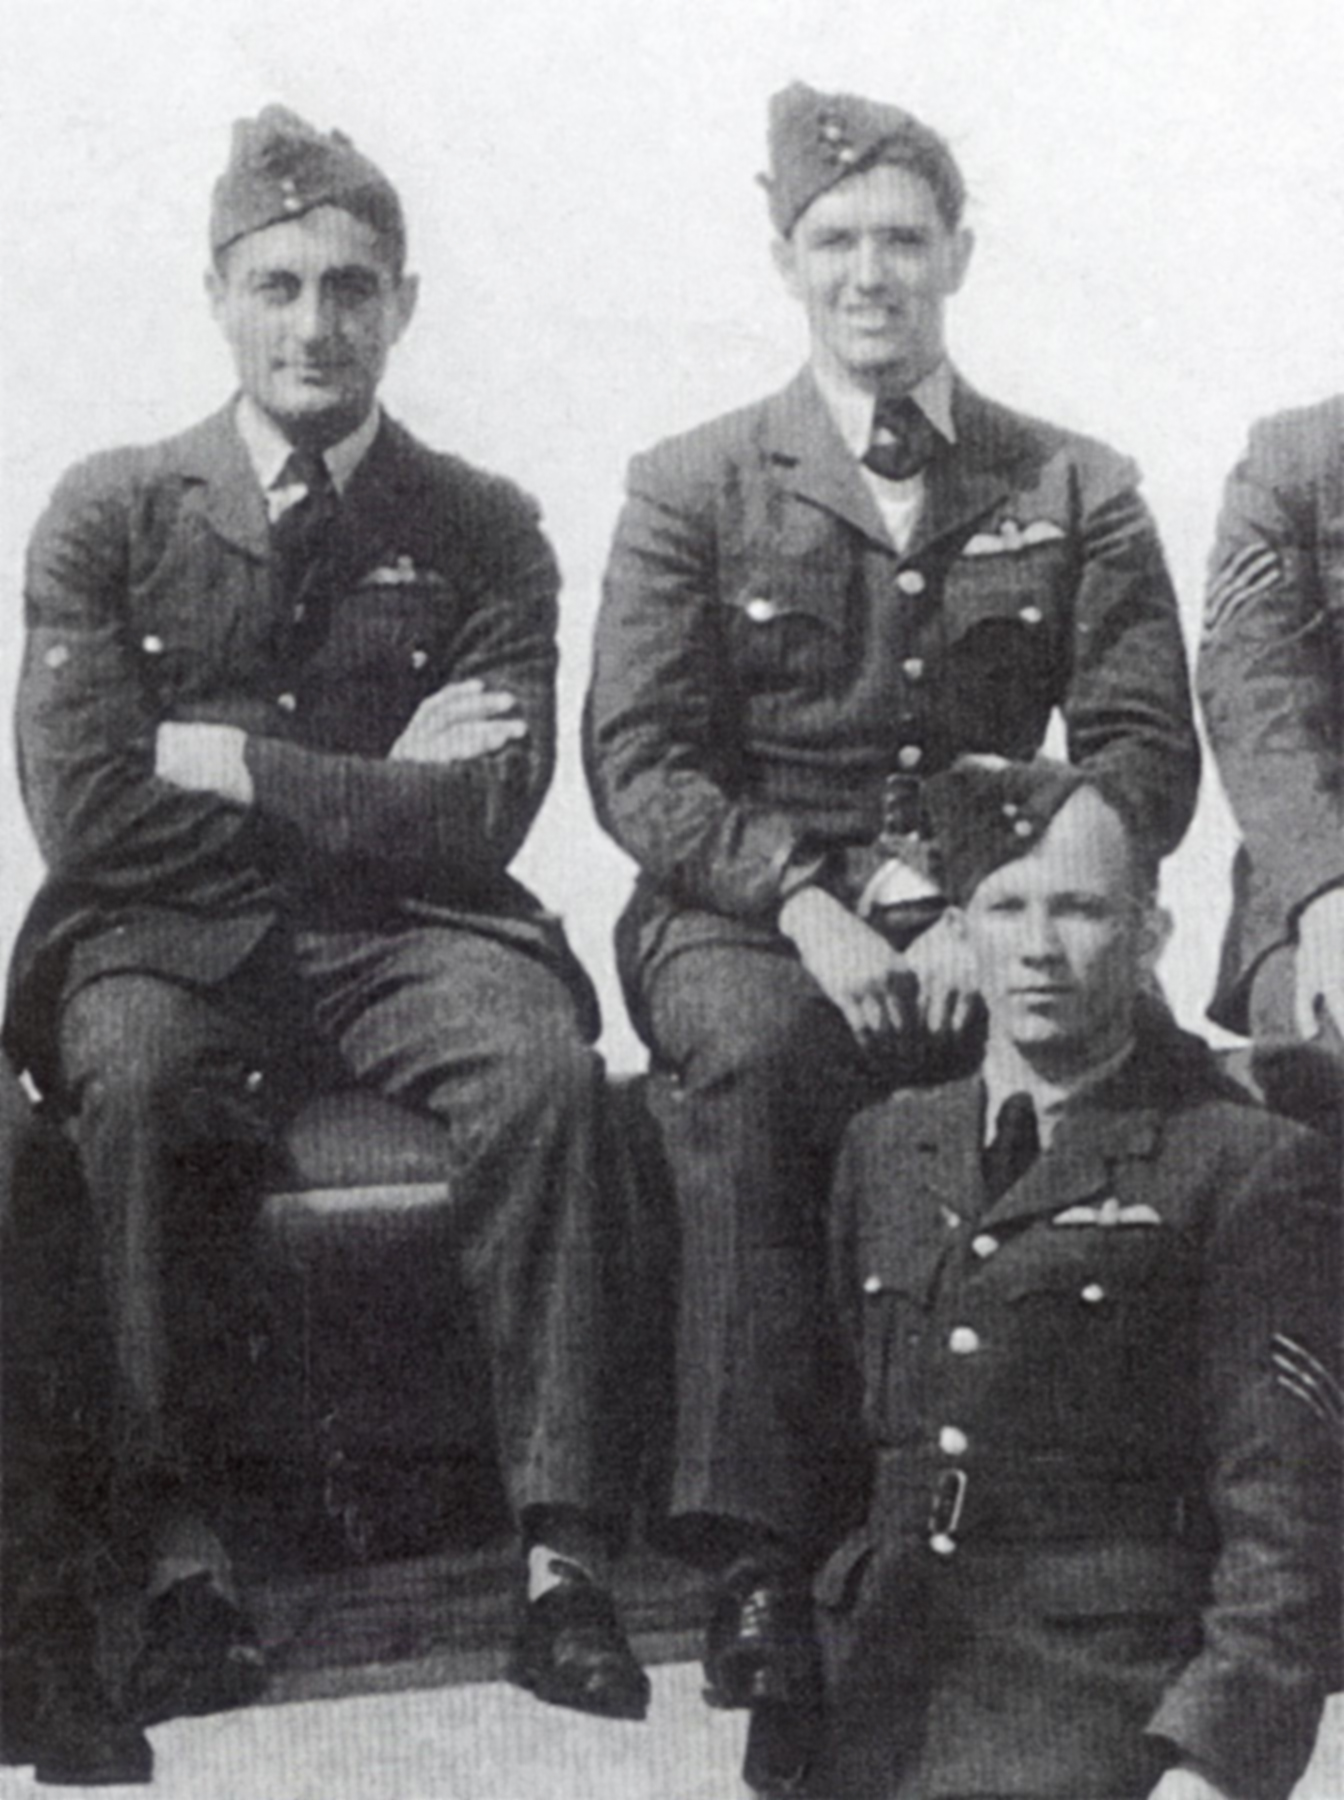 Aircrew RAF Dick Hardy Bush Parker later captured Cherbourg Aug 15 1940 01